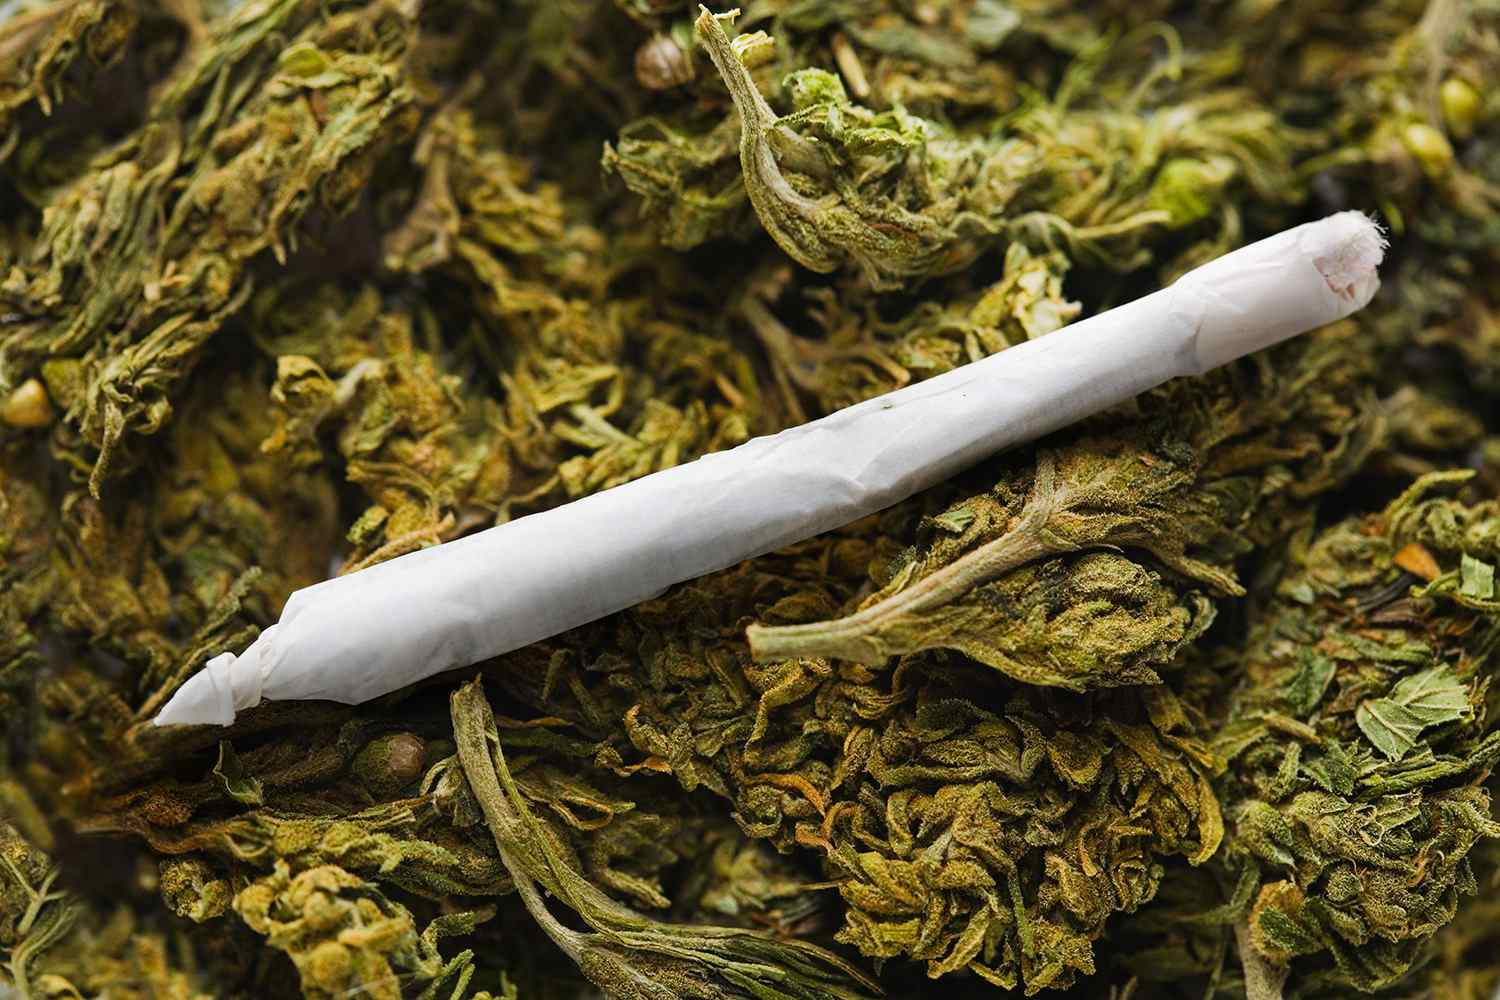 A marijuana cigarette or joint on a bed of buds